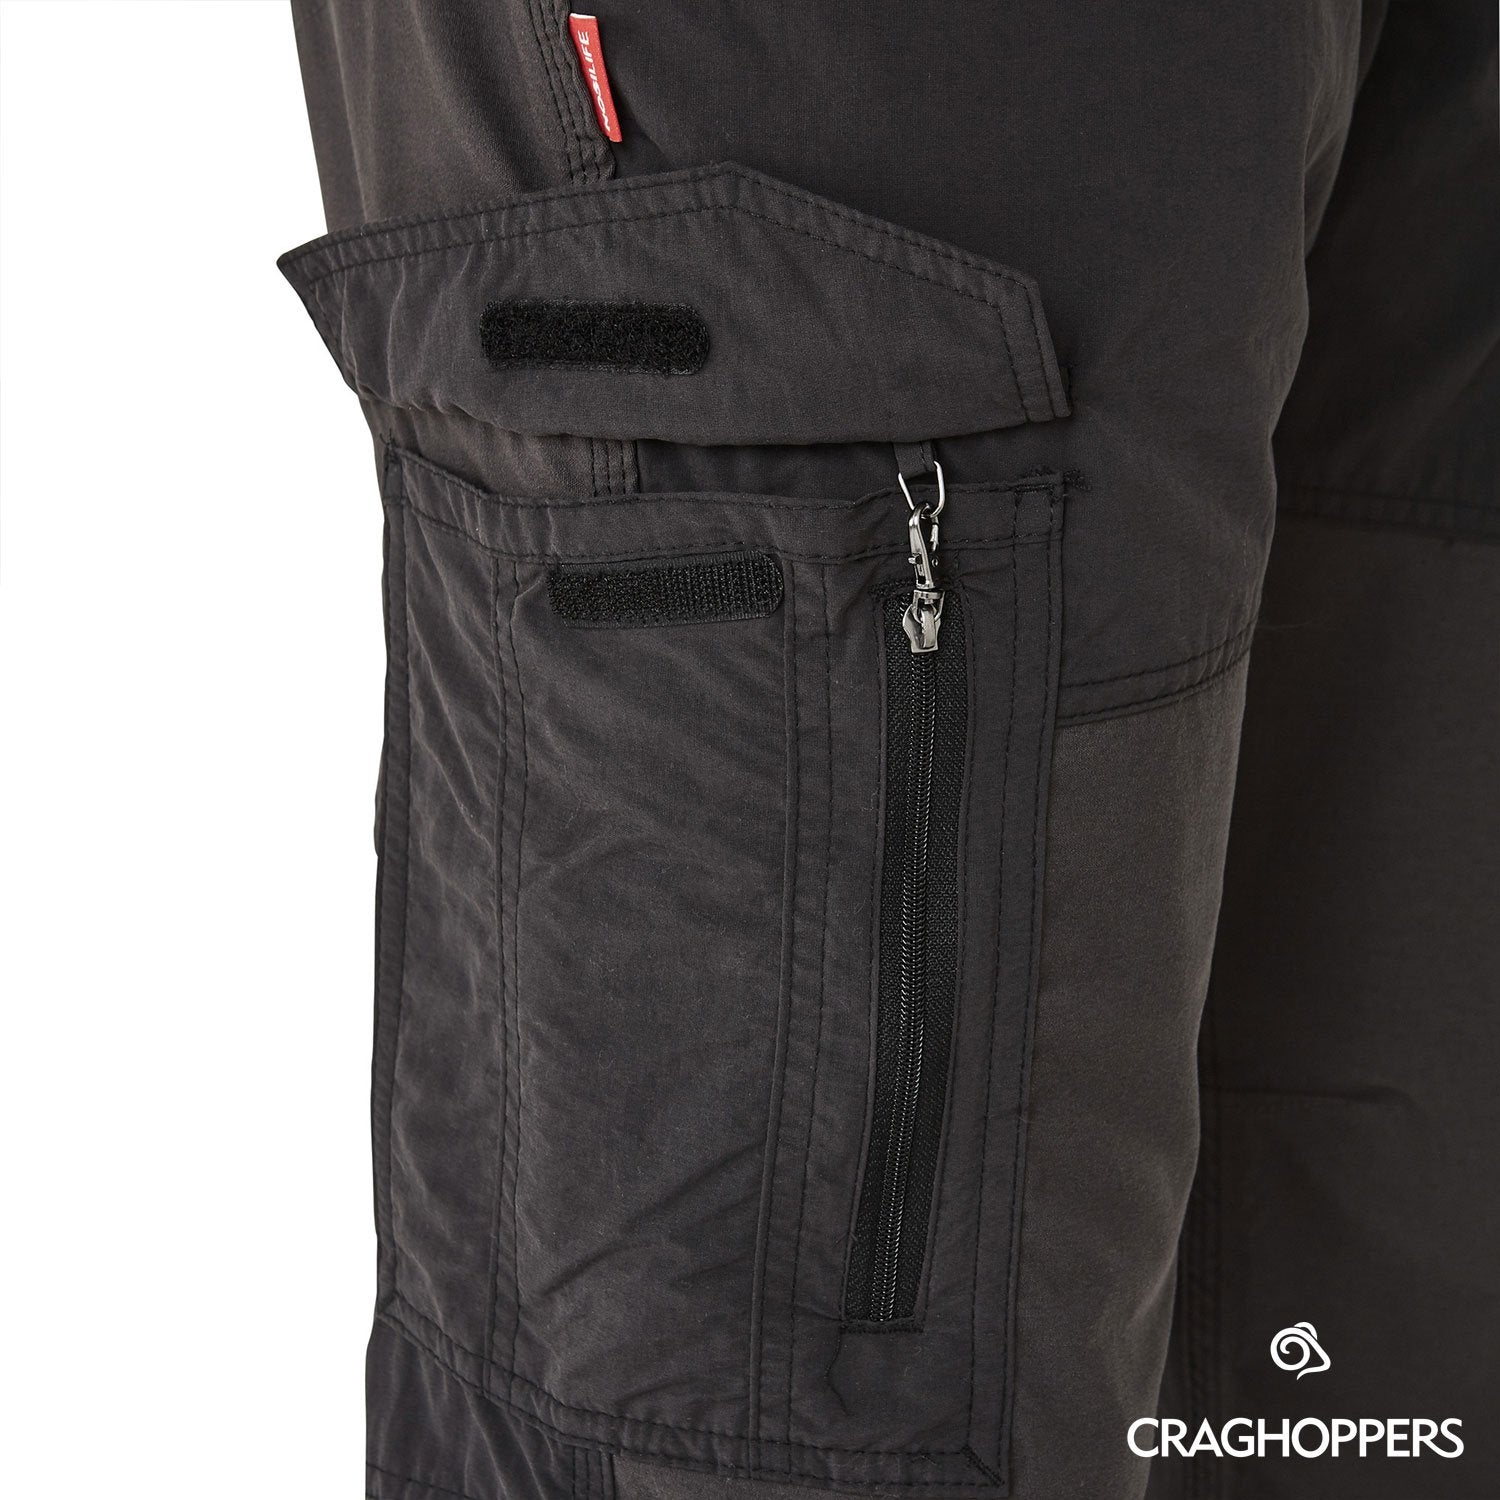 Thigh cargo pocket